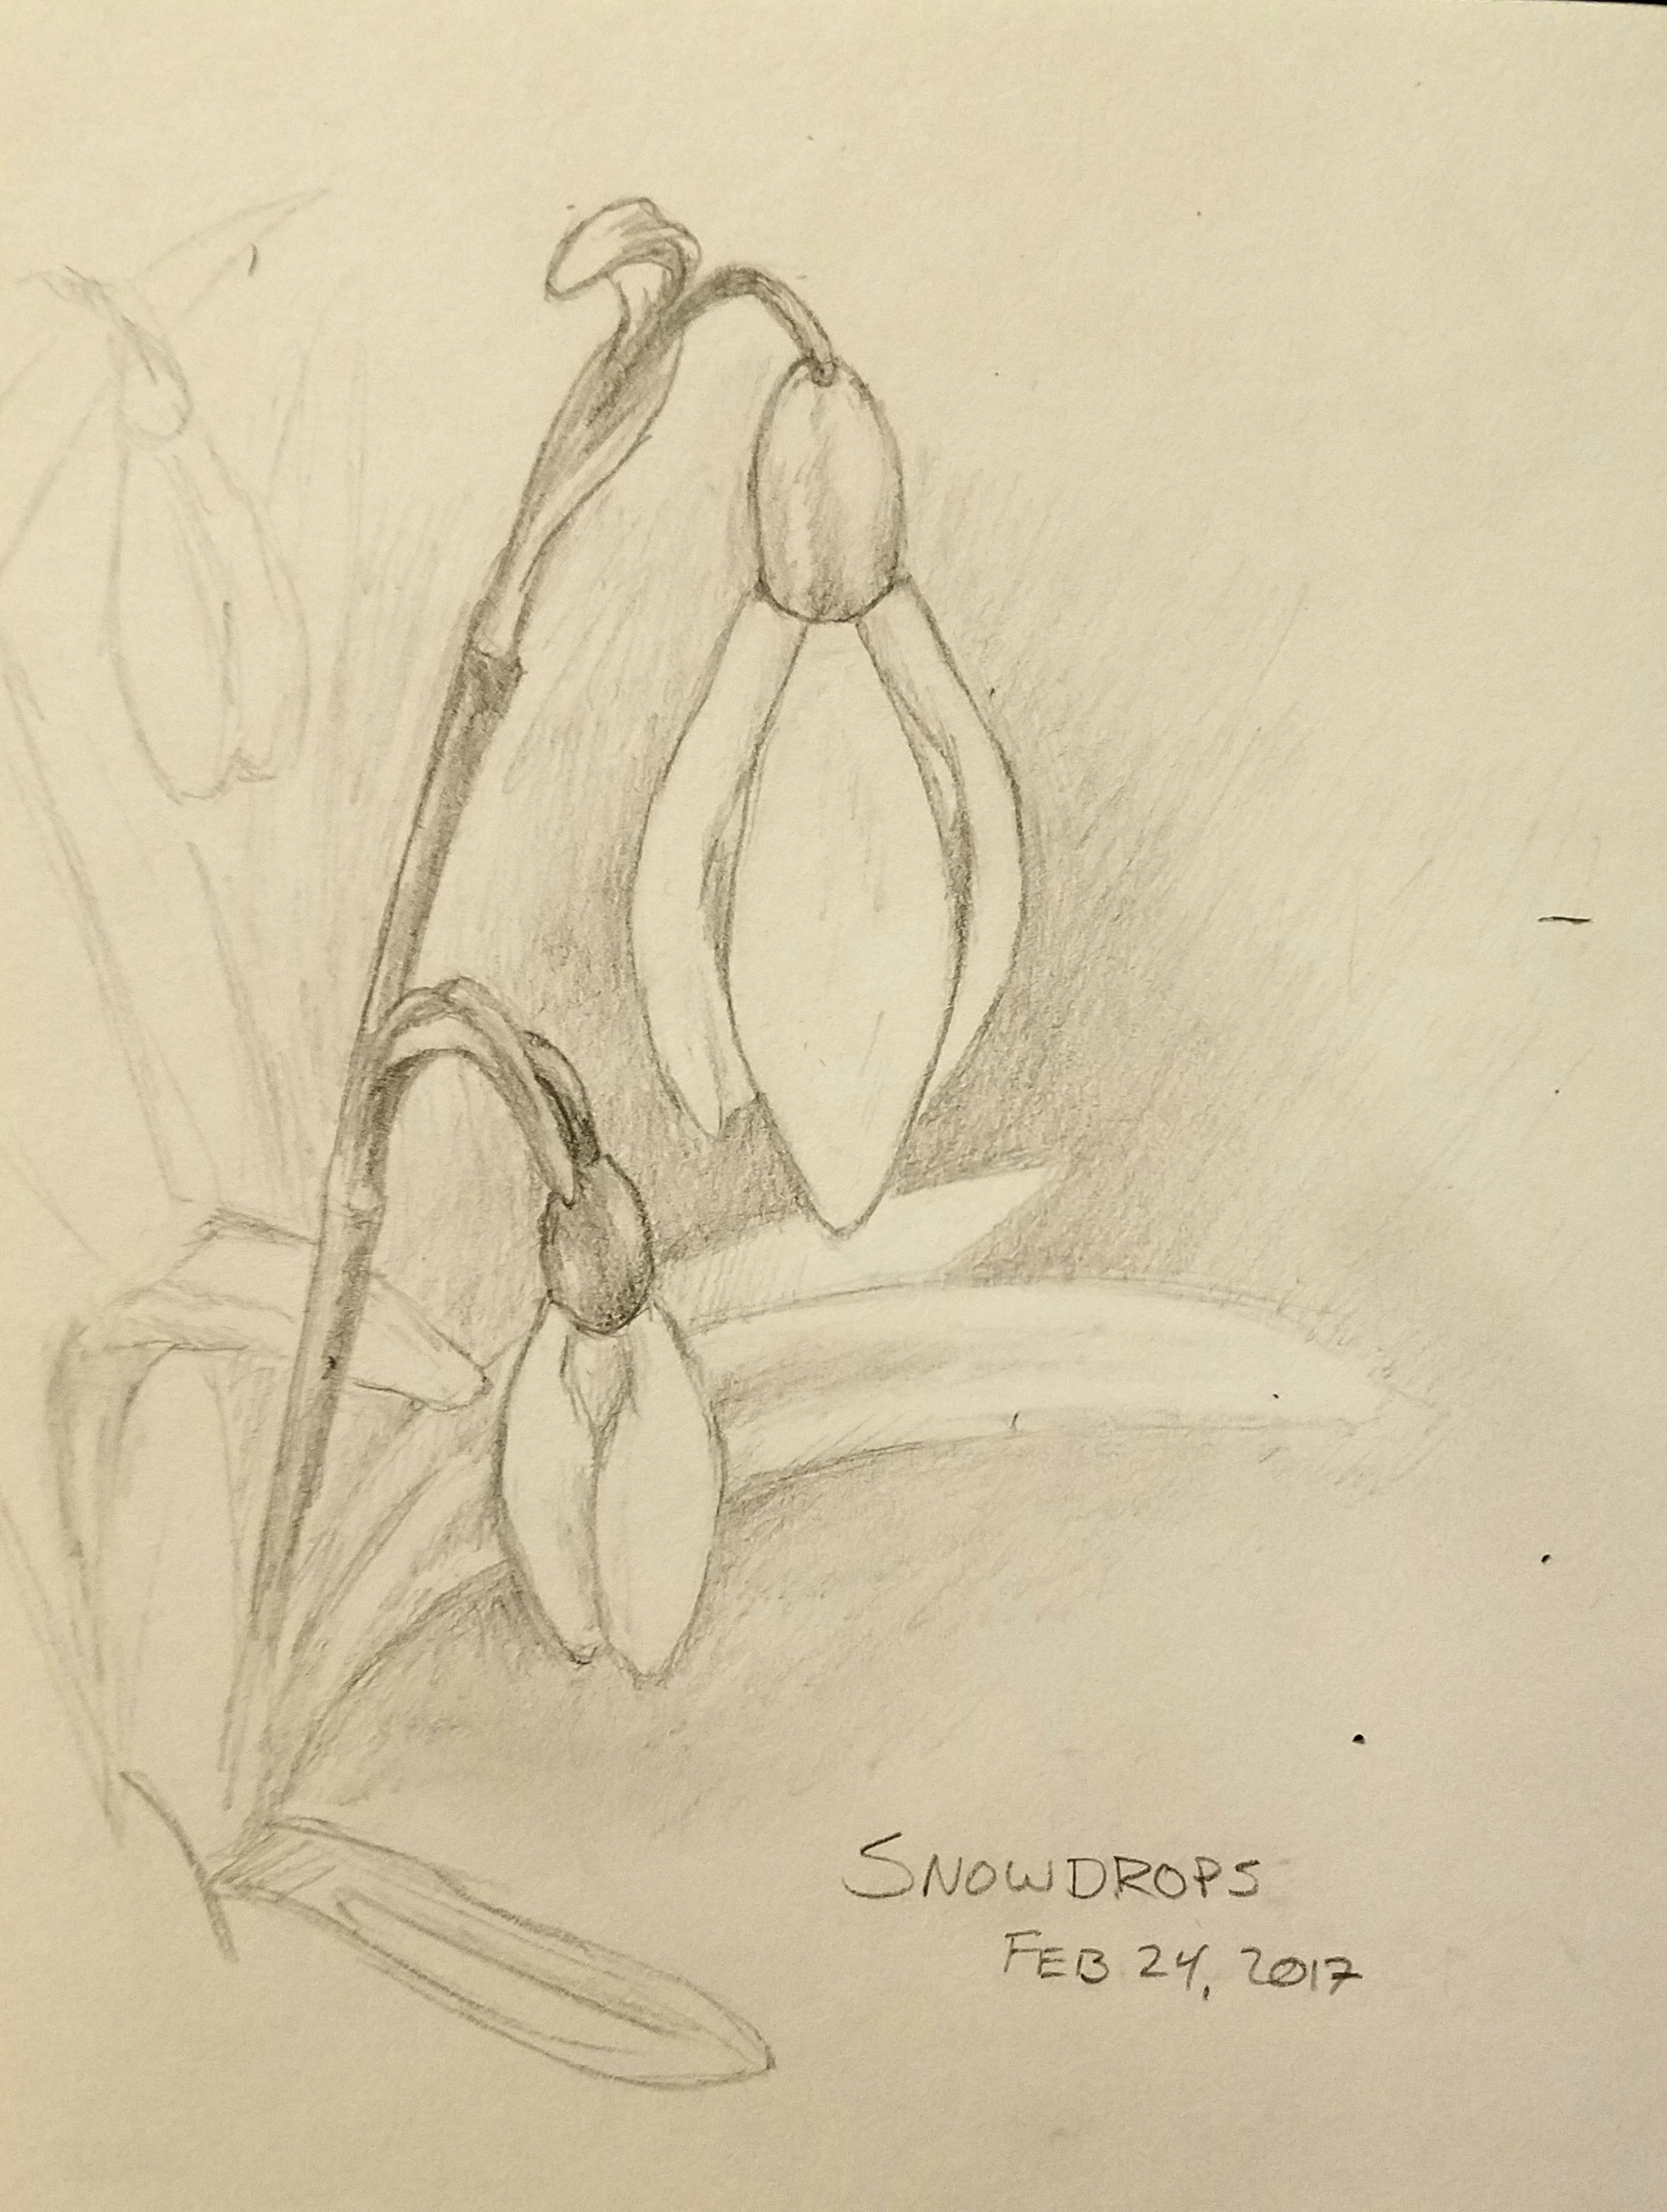 Pencil sketch of snowdrop flowers